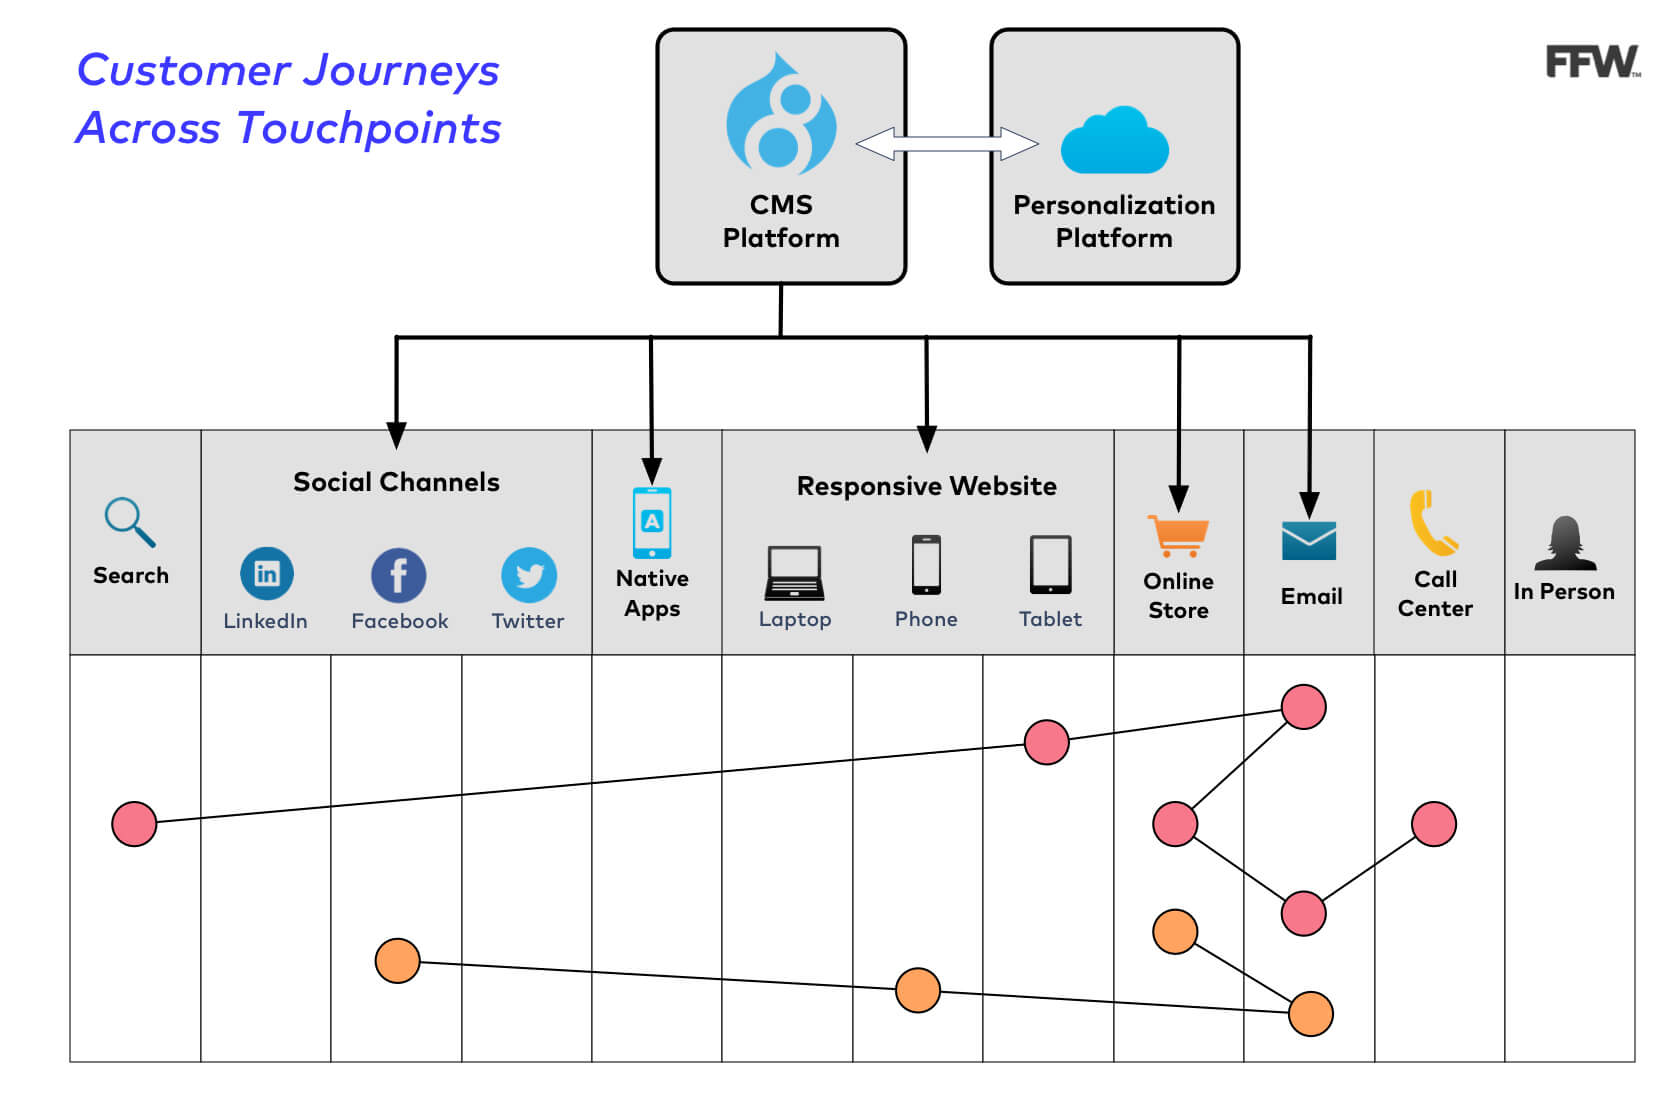 Customer Journey Across Touchpoints